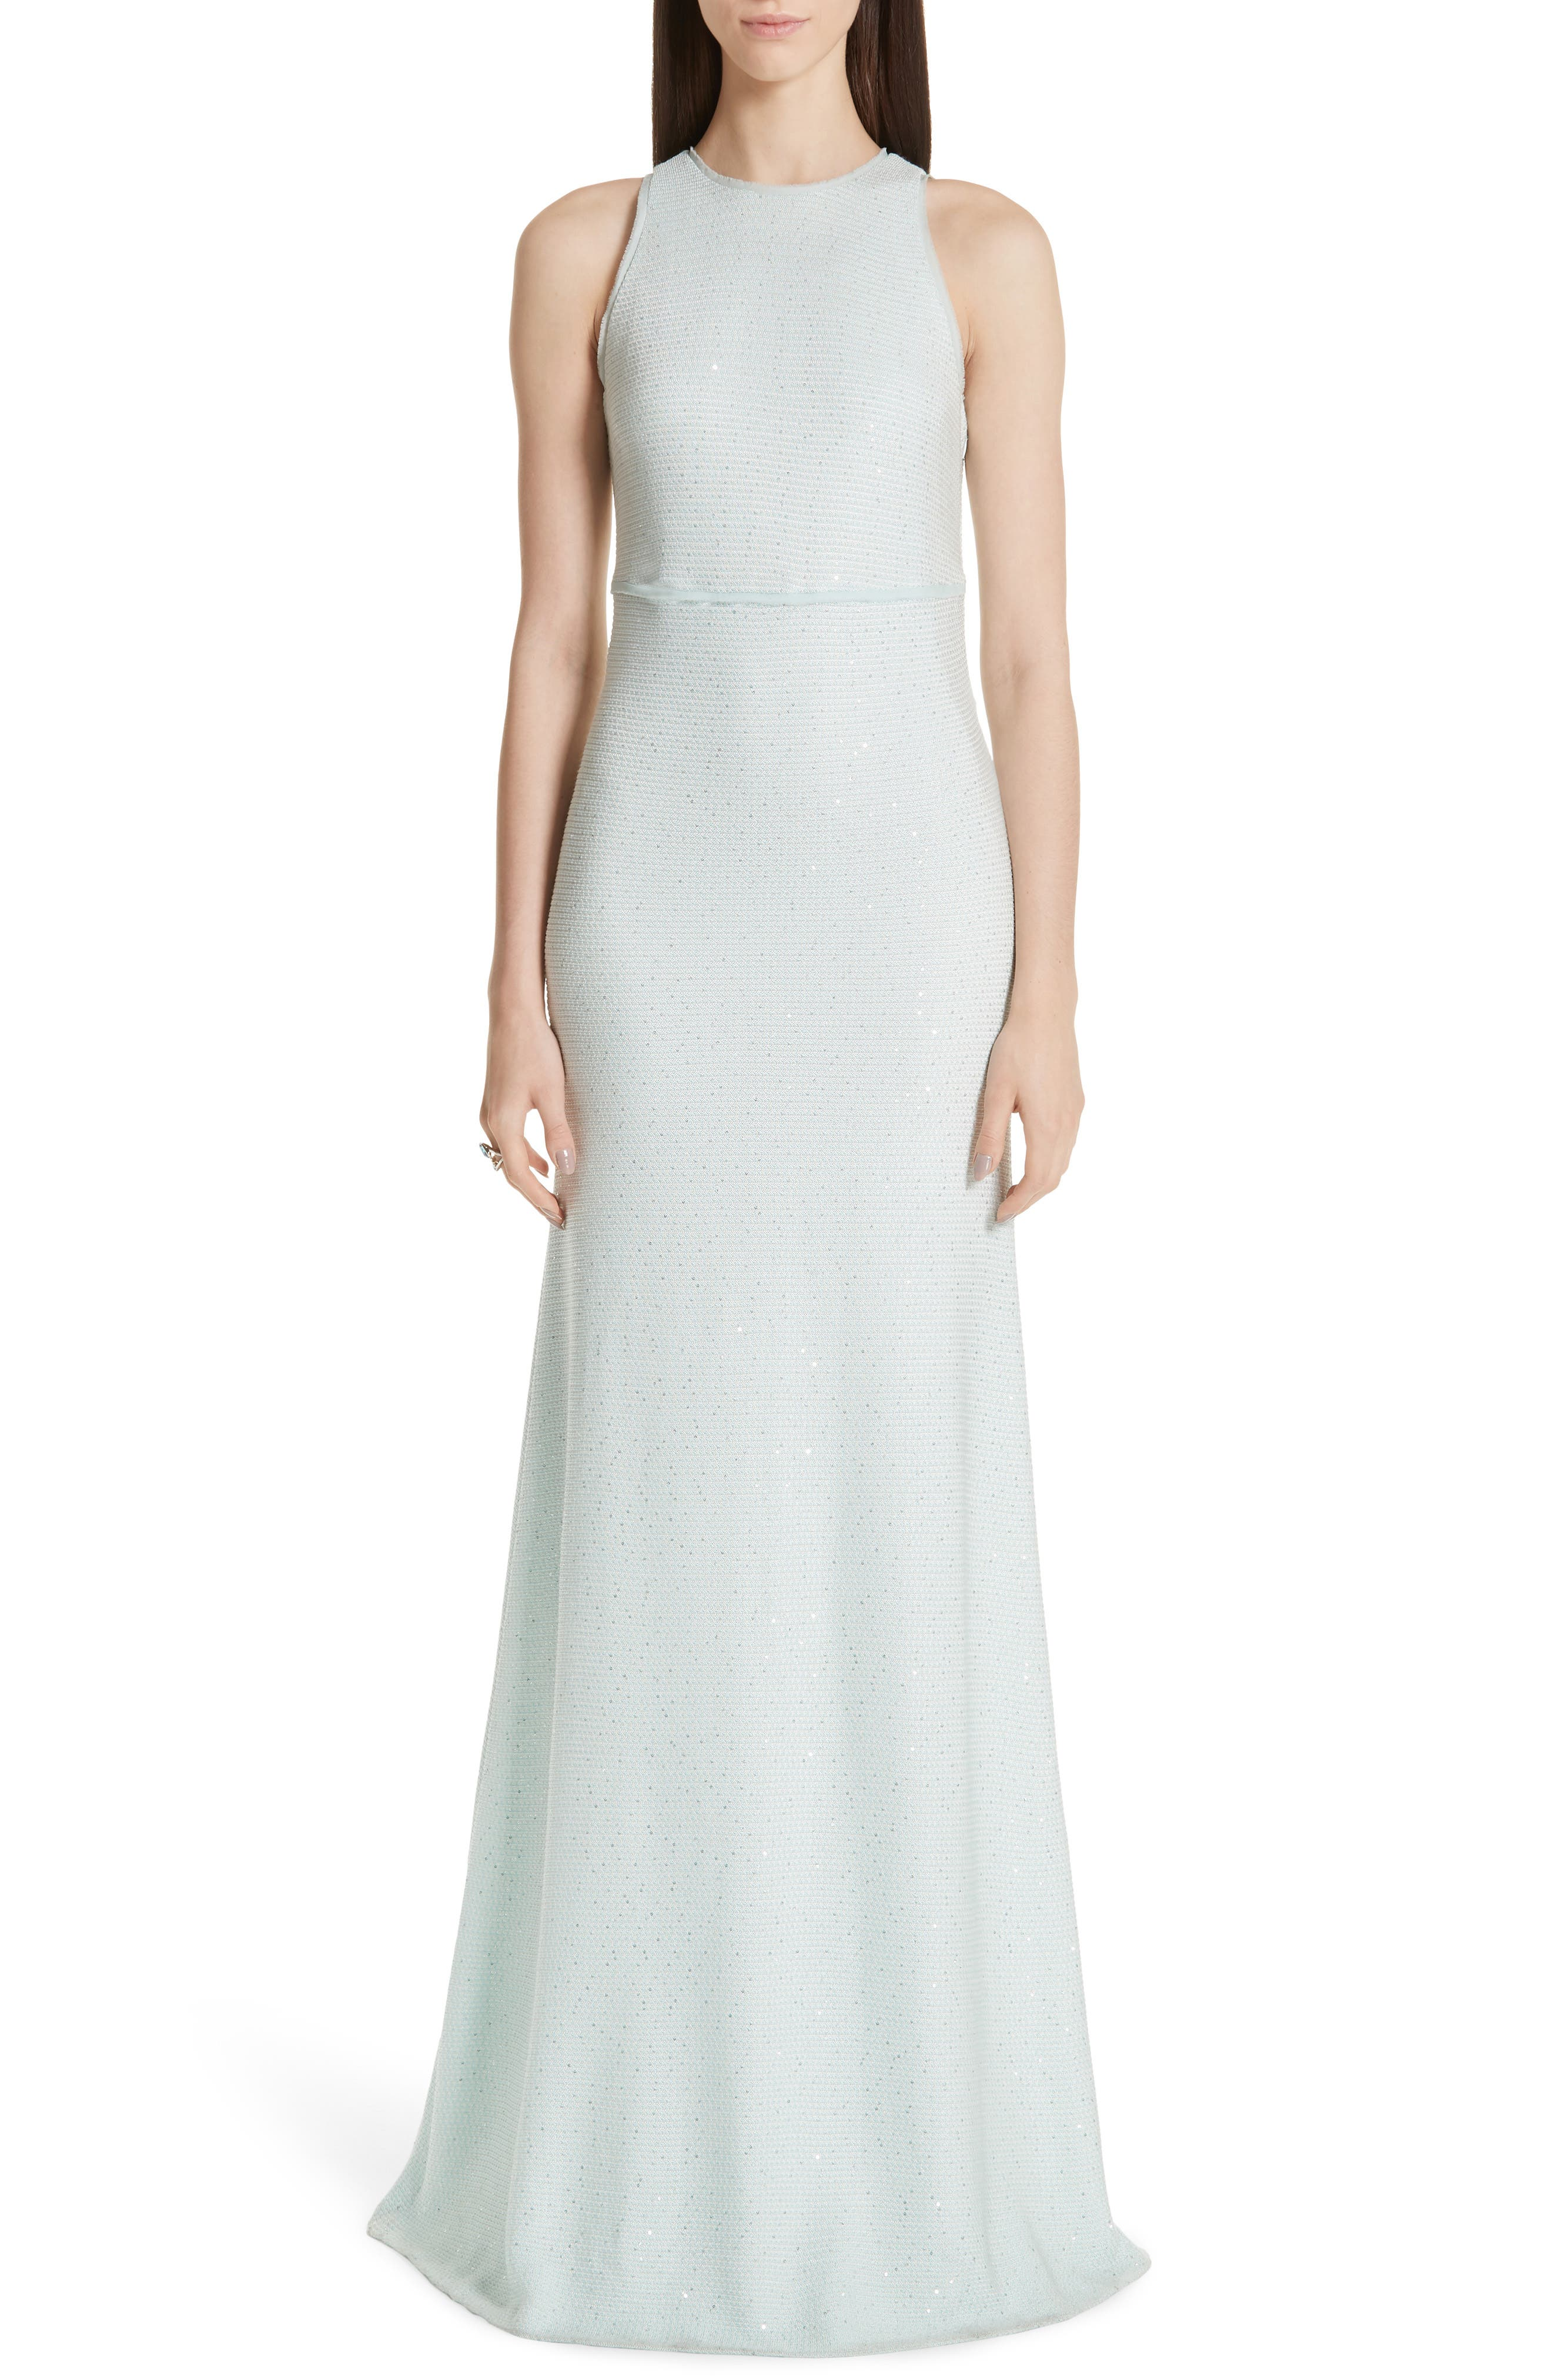 ST. JOHN COLLECTION,                             Links Sequin Knit Gown,                             Main thumbnail 1, color,                             OPAL